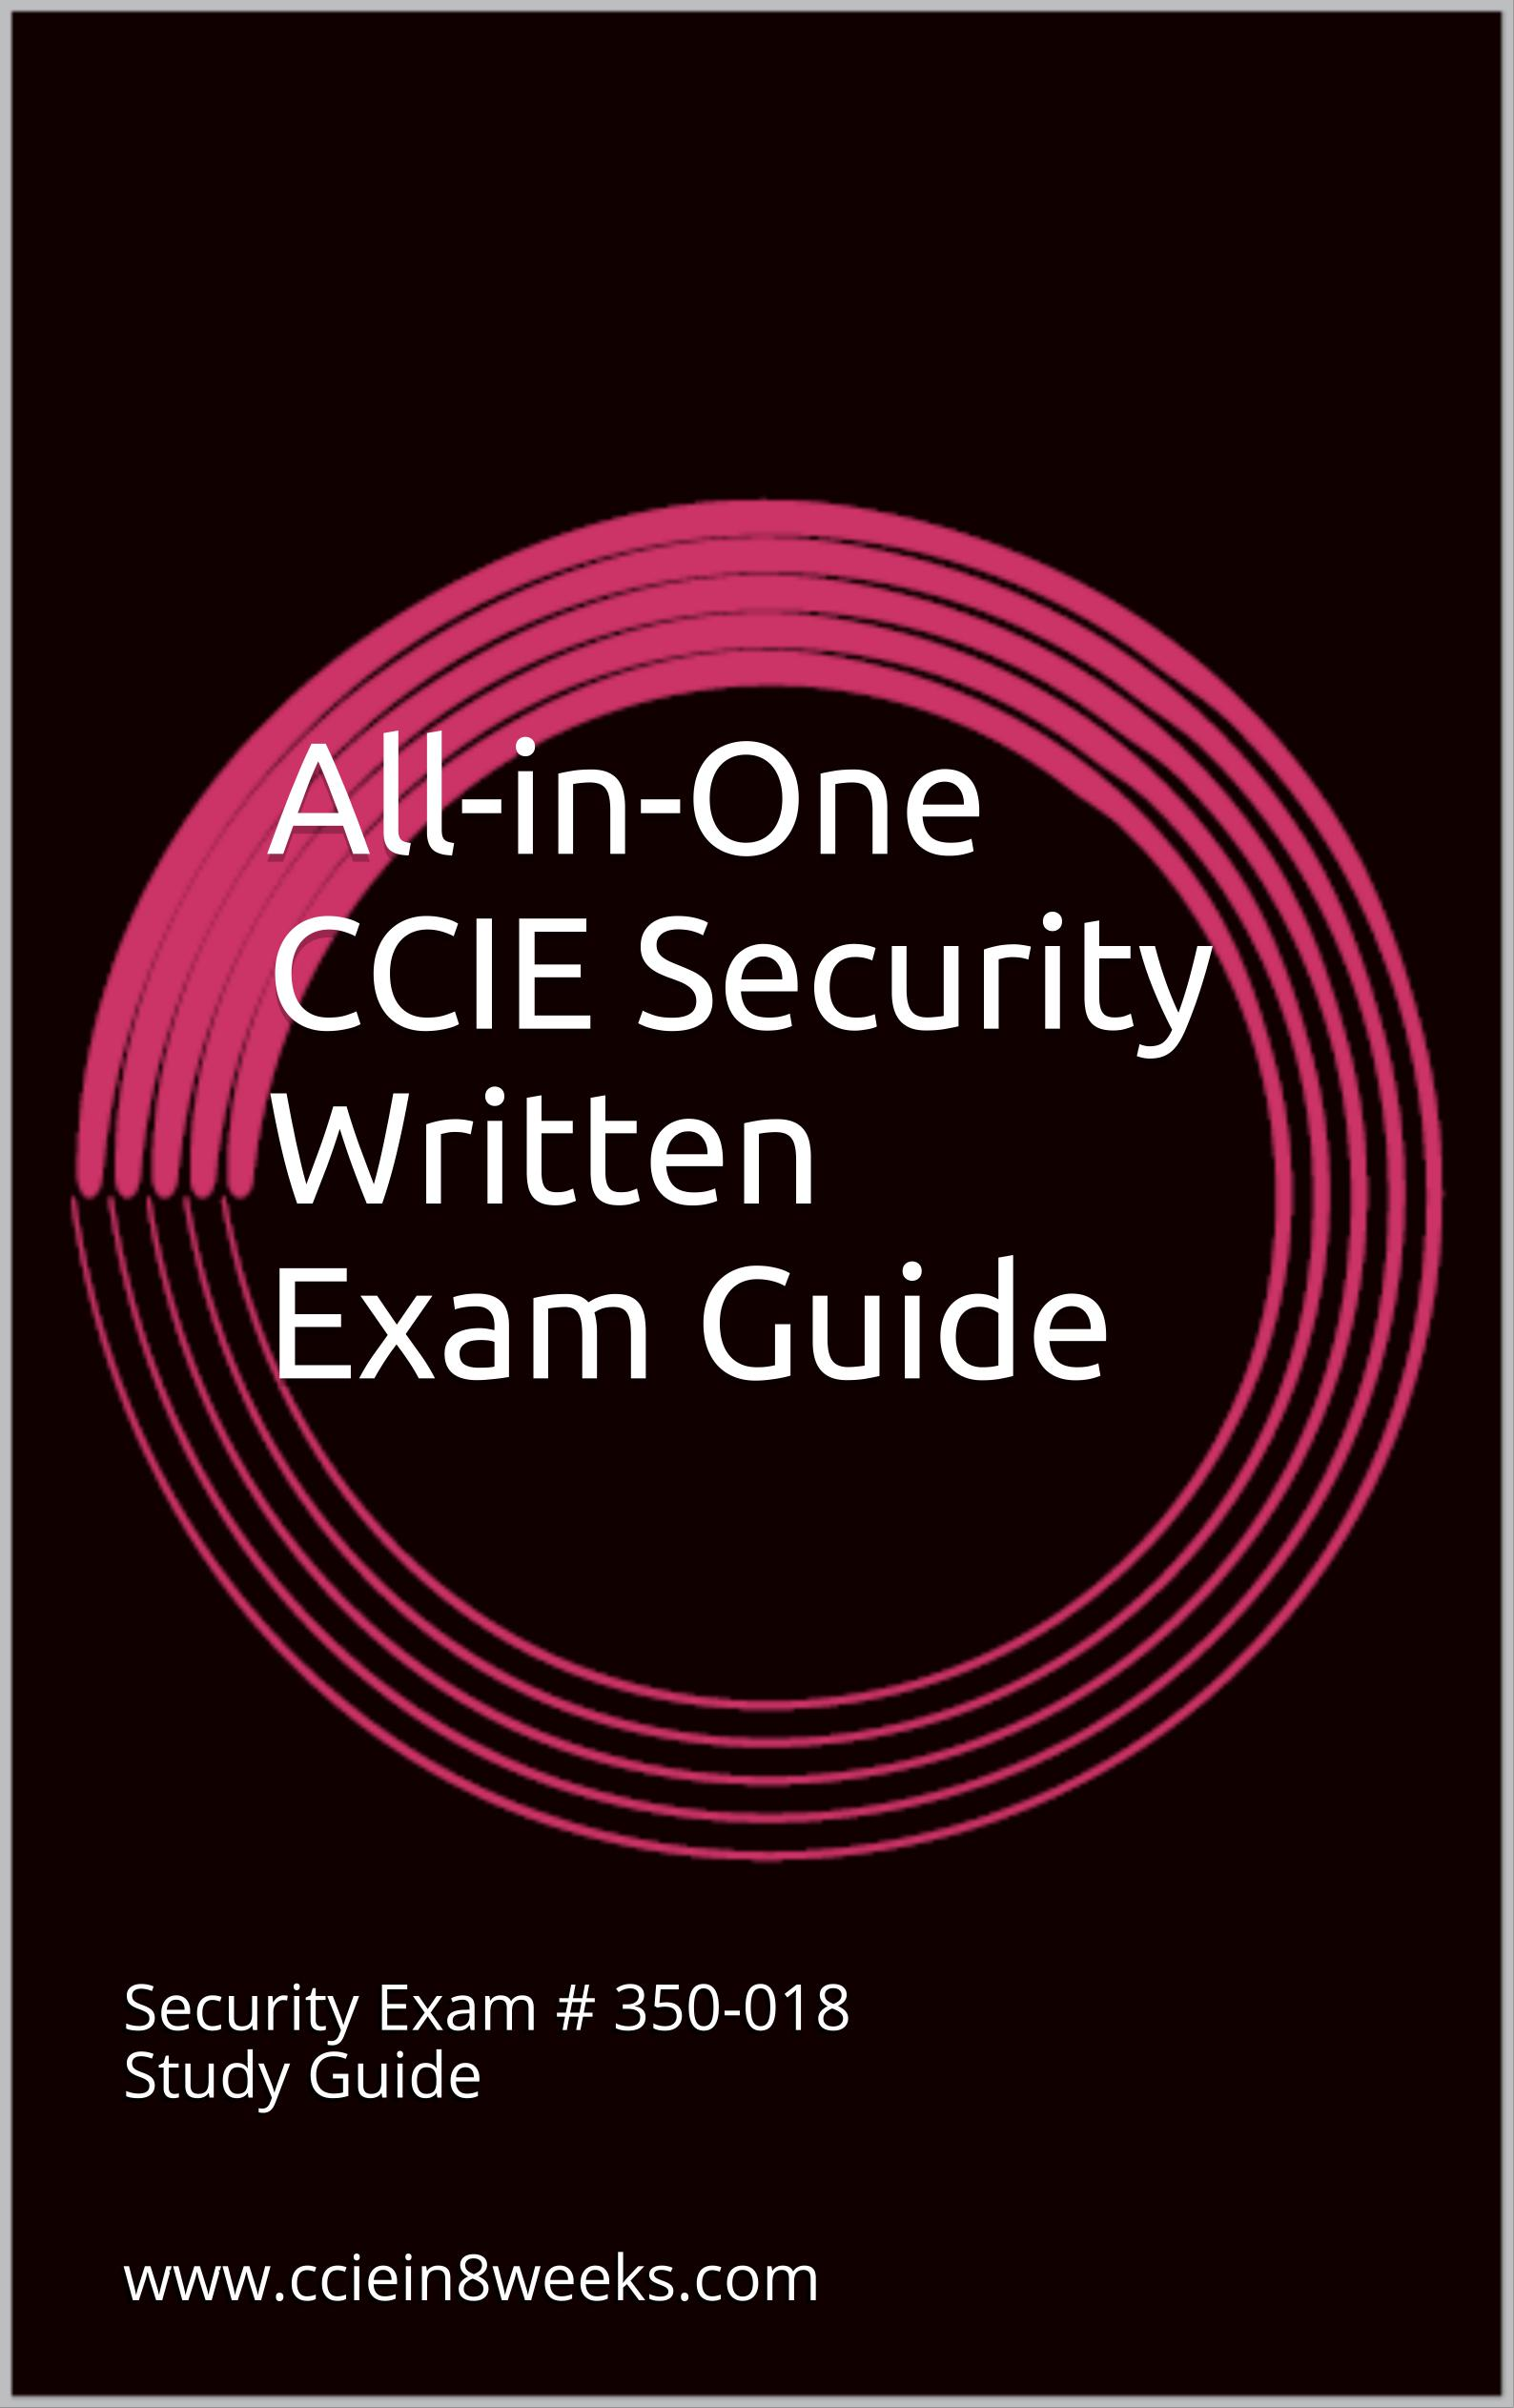 CCNP/CCIE notes available in PDF form - PacketLife.net